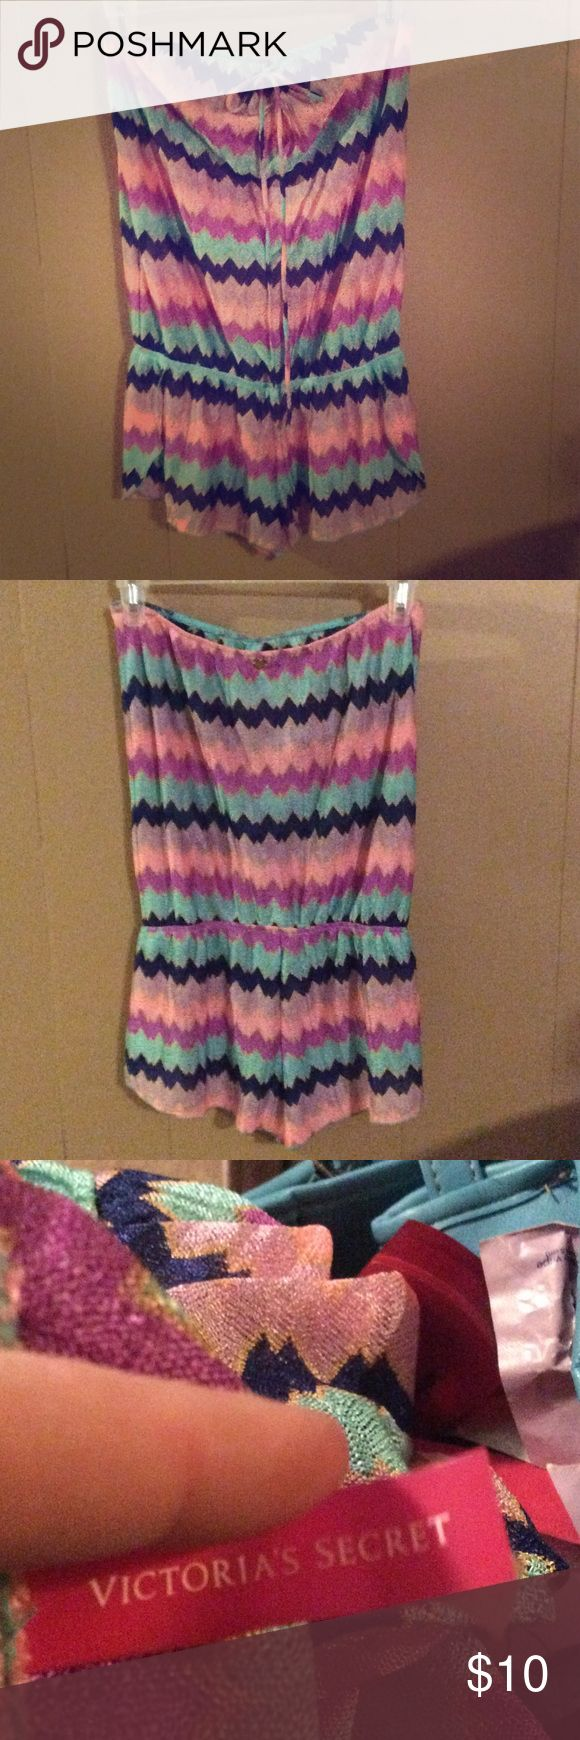 Victoria secret romper Multicolor see thru, more like a swimsuit cover up! Very cute! Size small Victoria's Secret Shorts